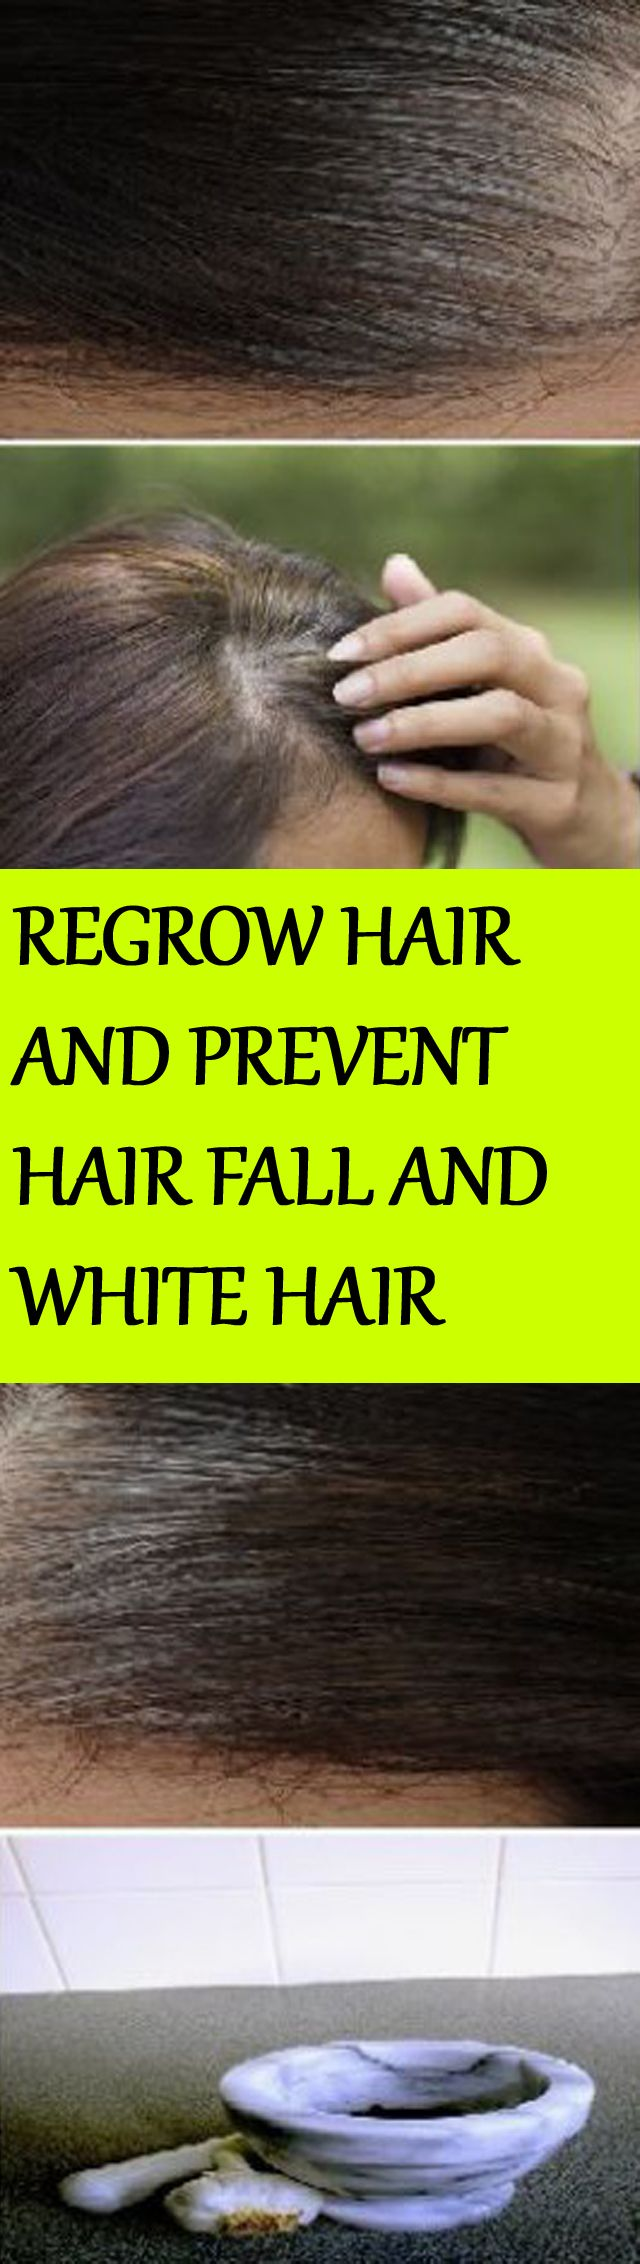 IT ONLY TAKES 5 MINUTES TO ELIMINATE WHITE HAIR, REGROW HAIR AND PREVENT HAIR FALL!